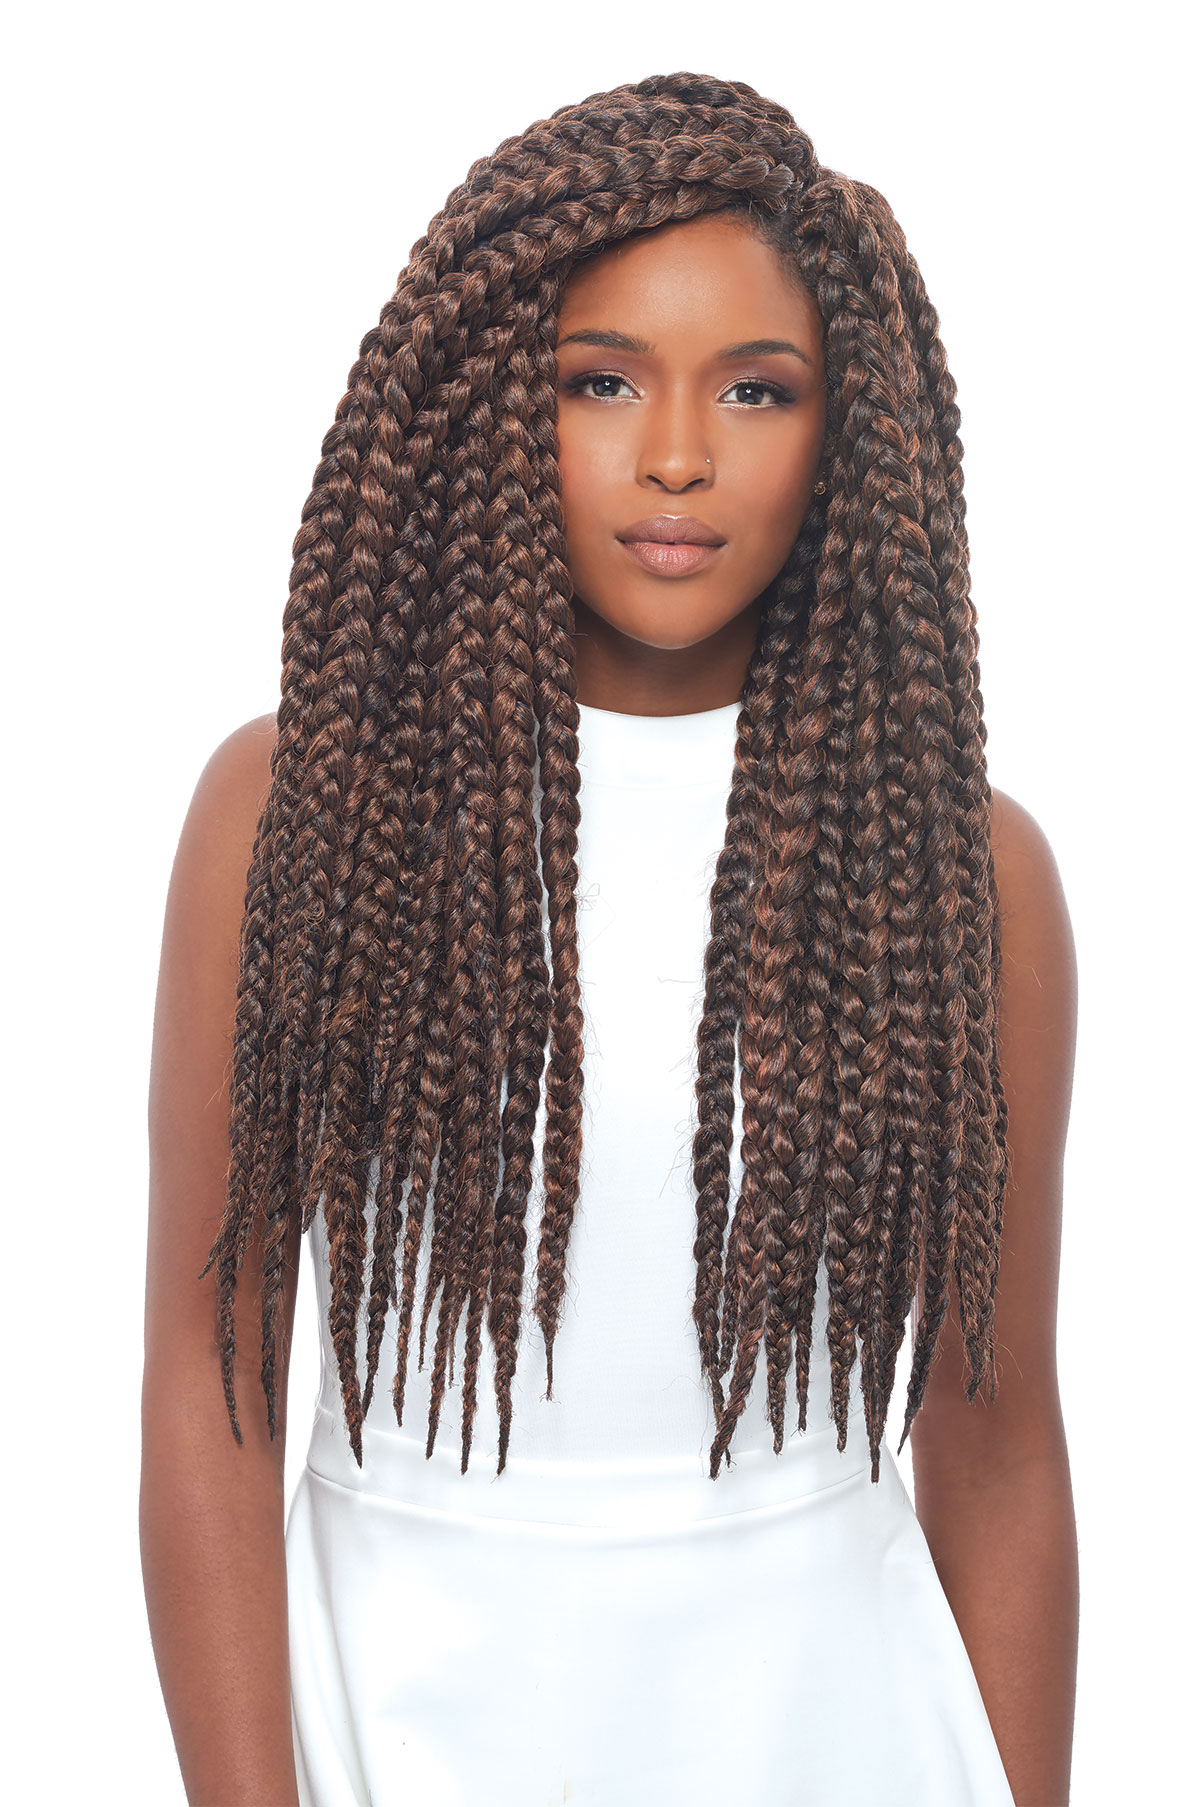 Crochet Braids Ebay : ... BRAID 24 - JANET COLLECTION SYNTHETIC CROCHET BRAIDING HAIR eBay